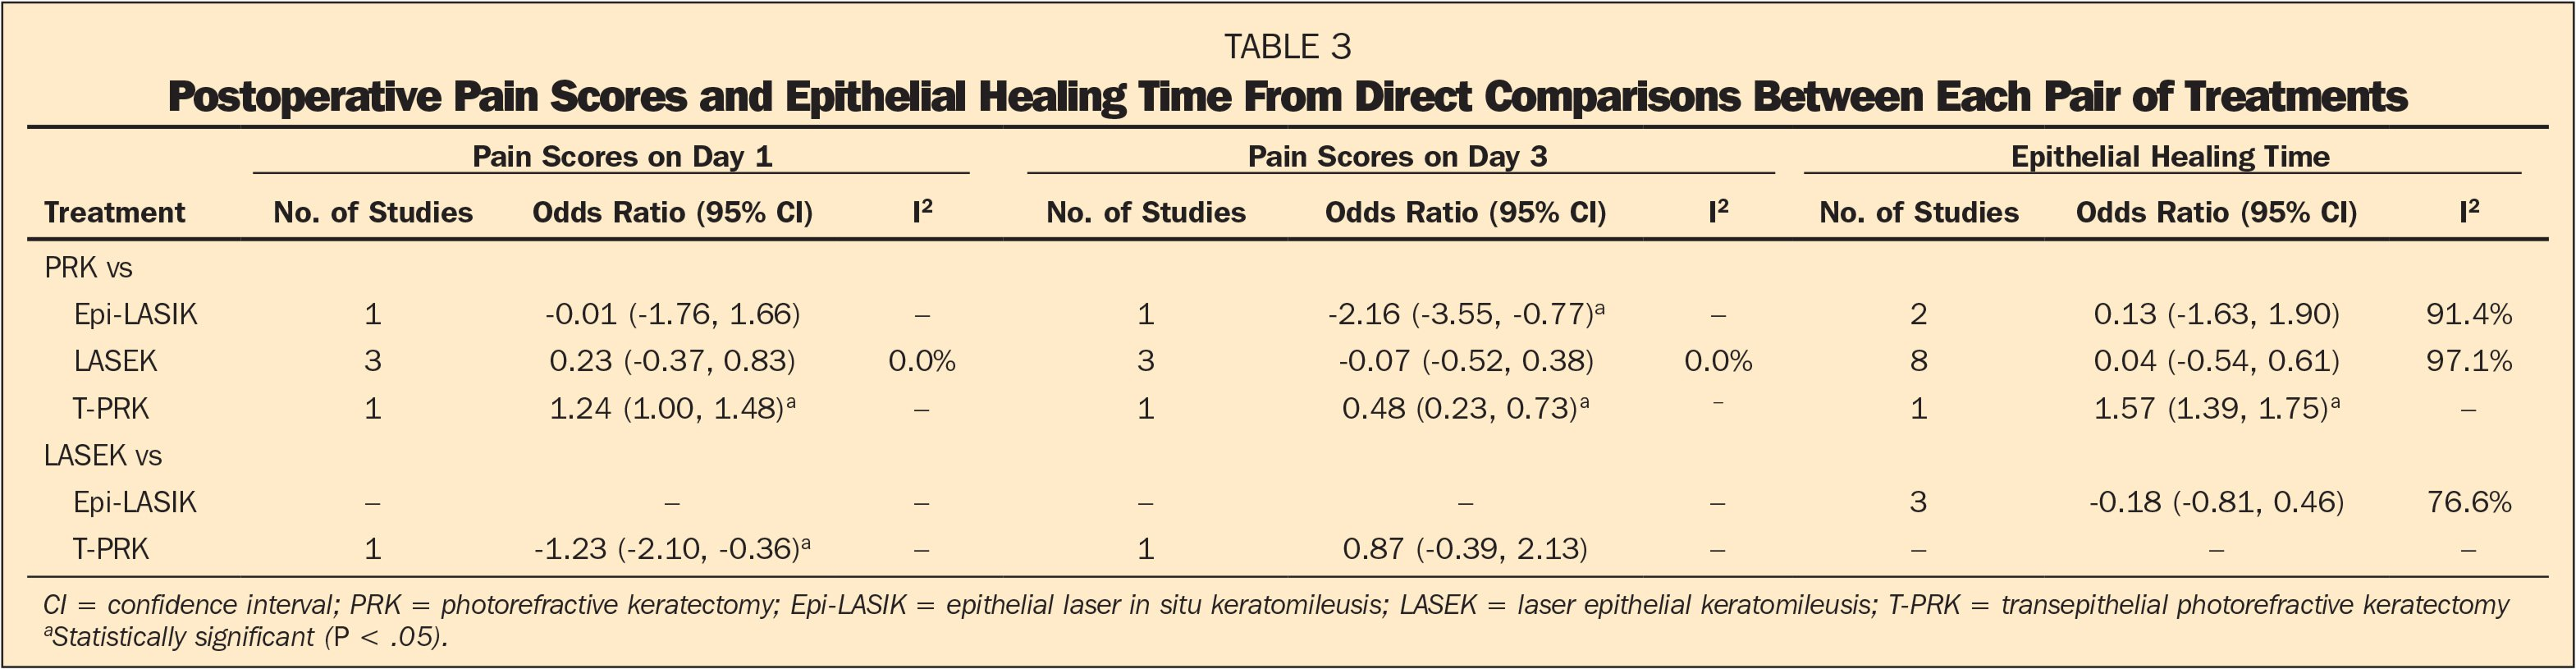 Postoperative Pain Scores and Epithelial Healing Time From Direct Comparisons Between Each Pair of Treatments